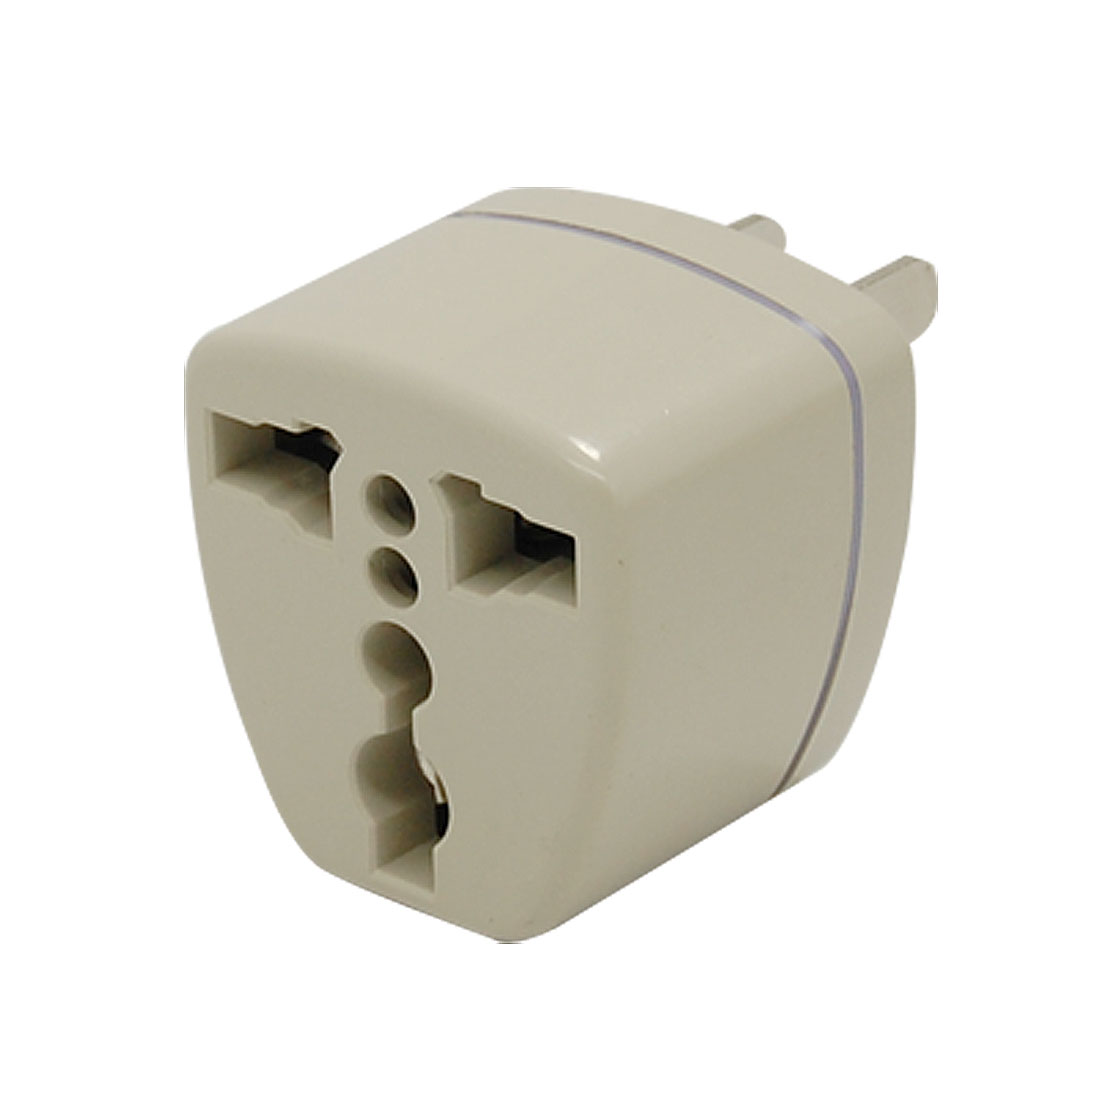 US Plug AC250V 10A to AU EU UK AC Plug Adapter Converter